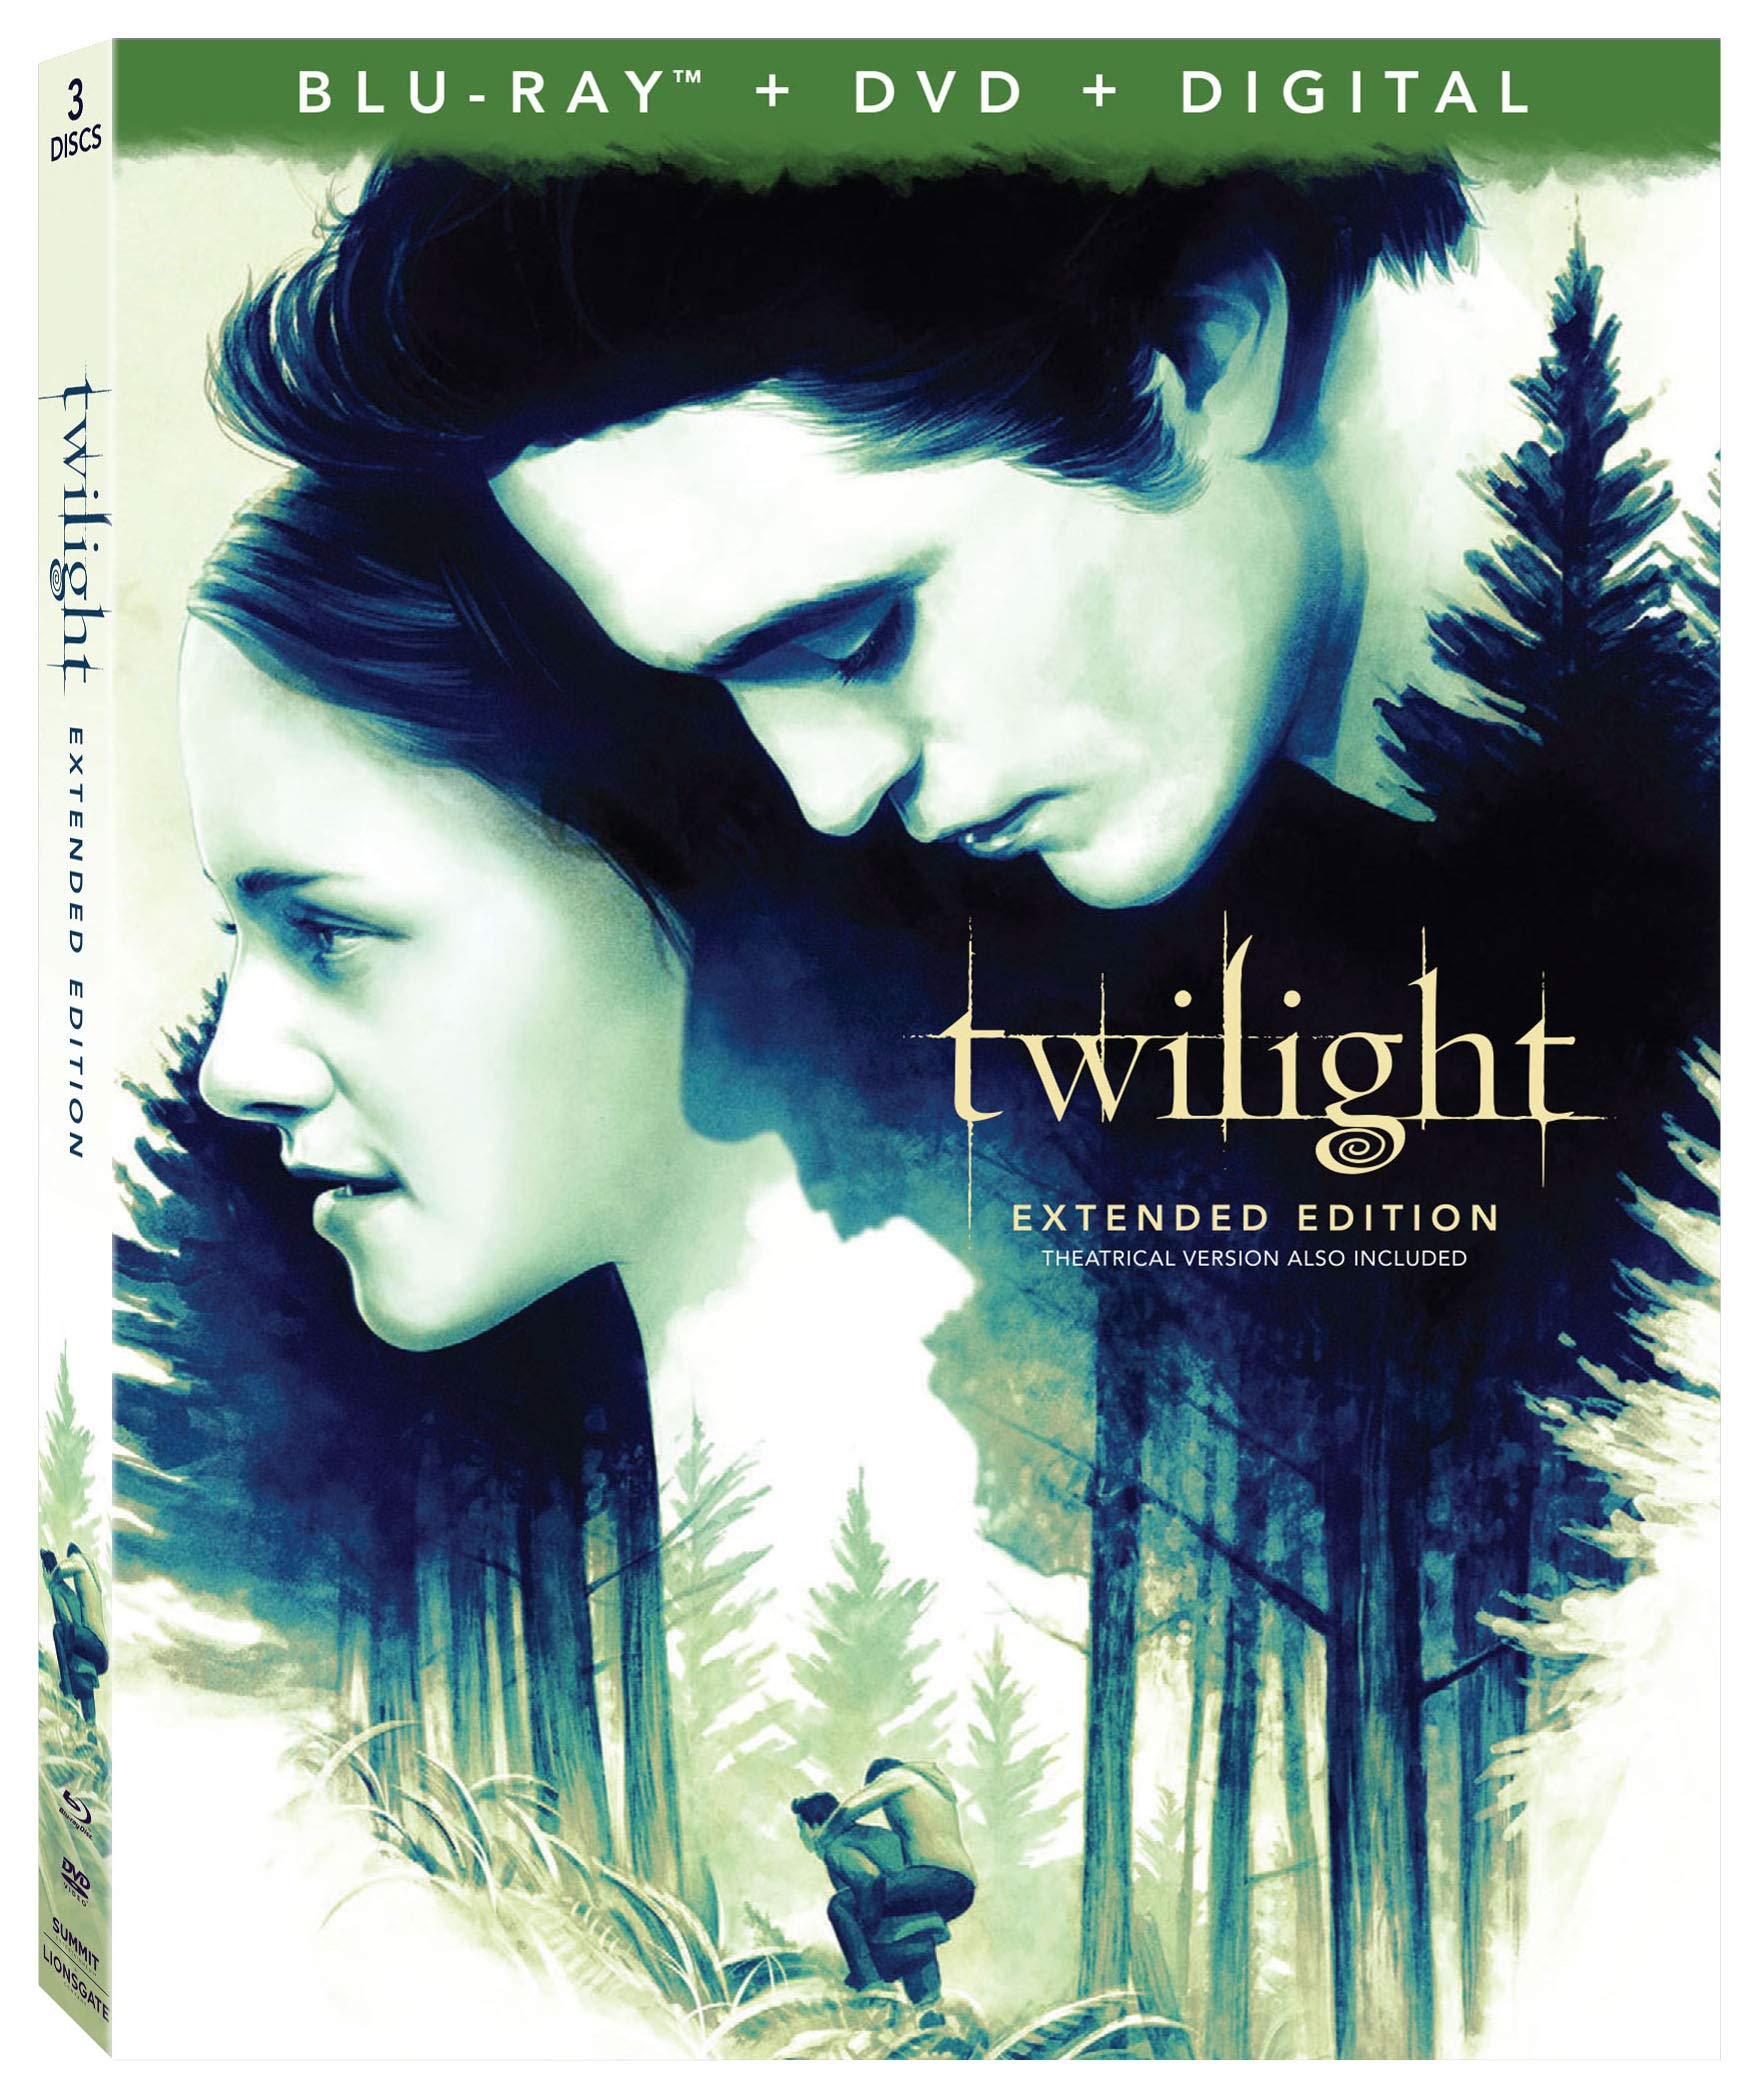 Blu-ray : Twilight (With DVD, Digital Copy)